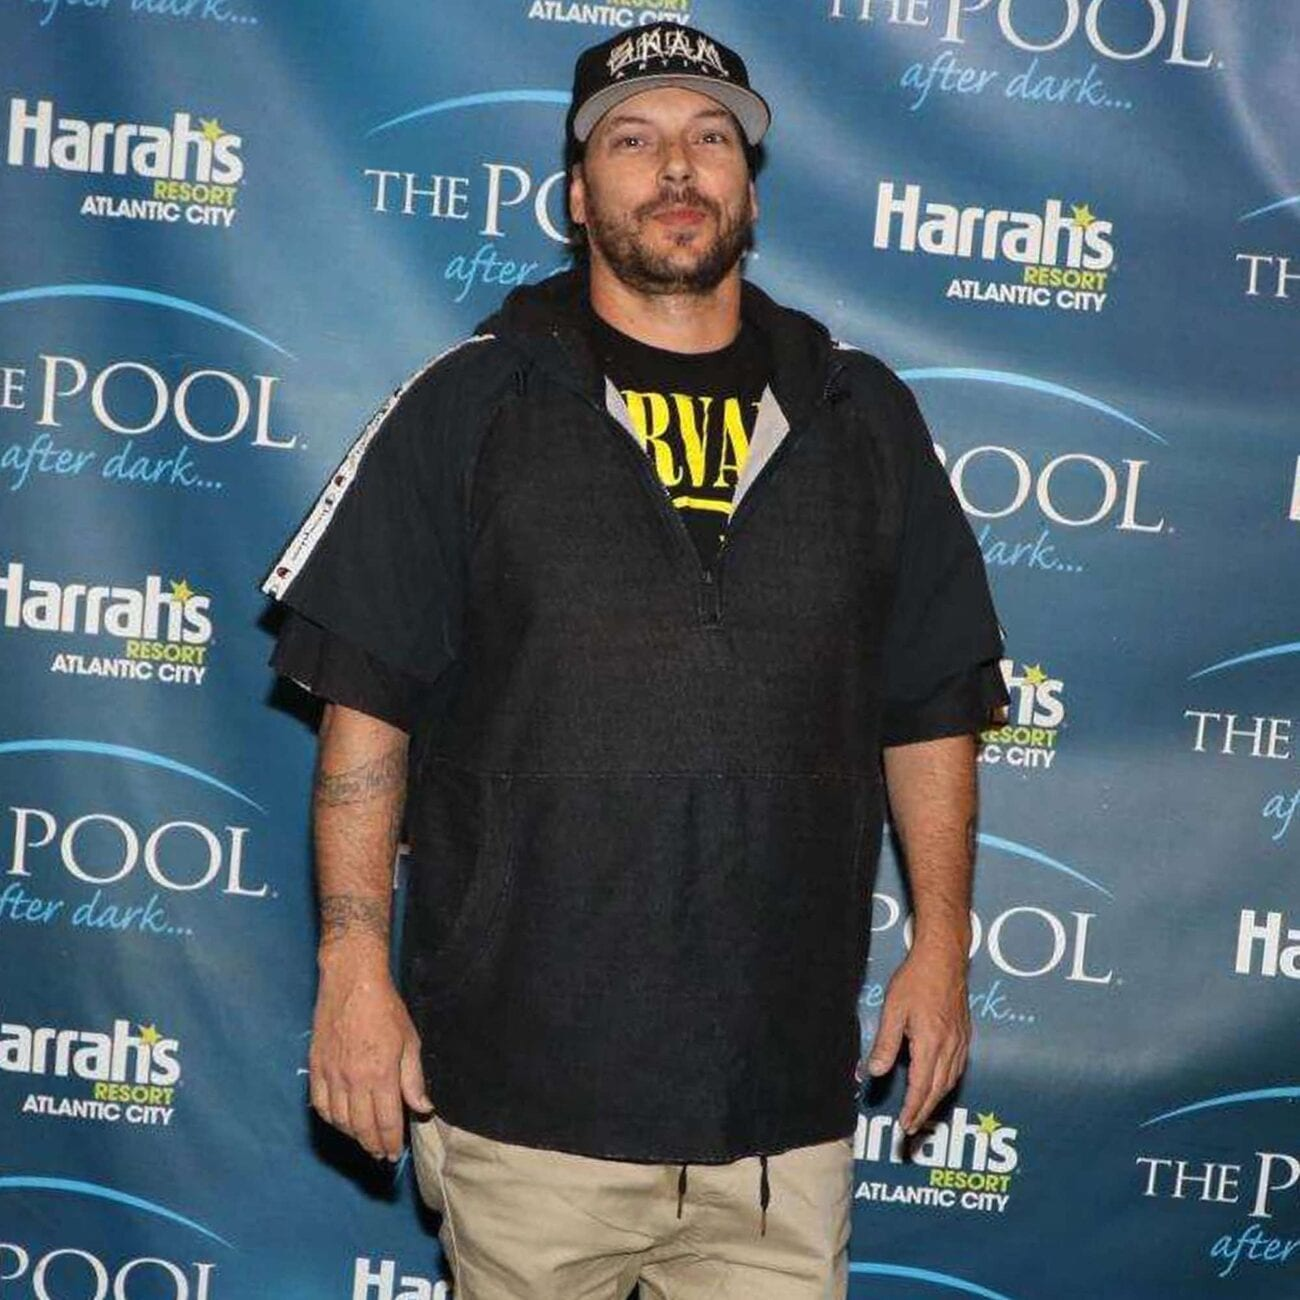 Britney Spears' ex-husband Kevin Federline weighs in on her conservatorship. Learn about what he reveals about young Britney Spears.